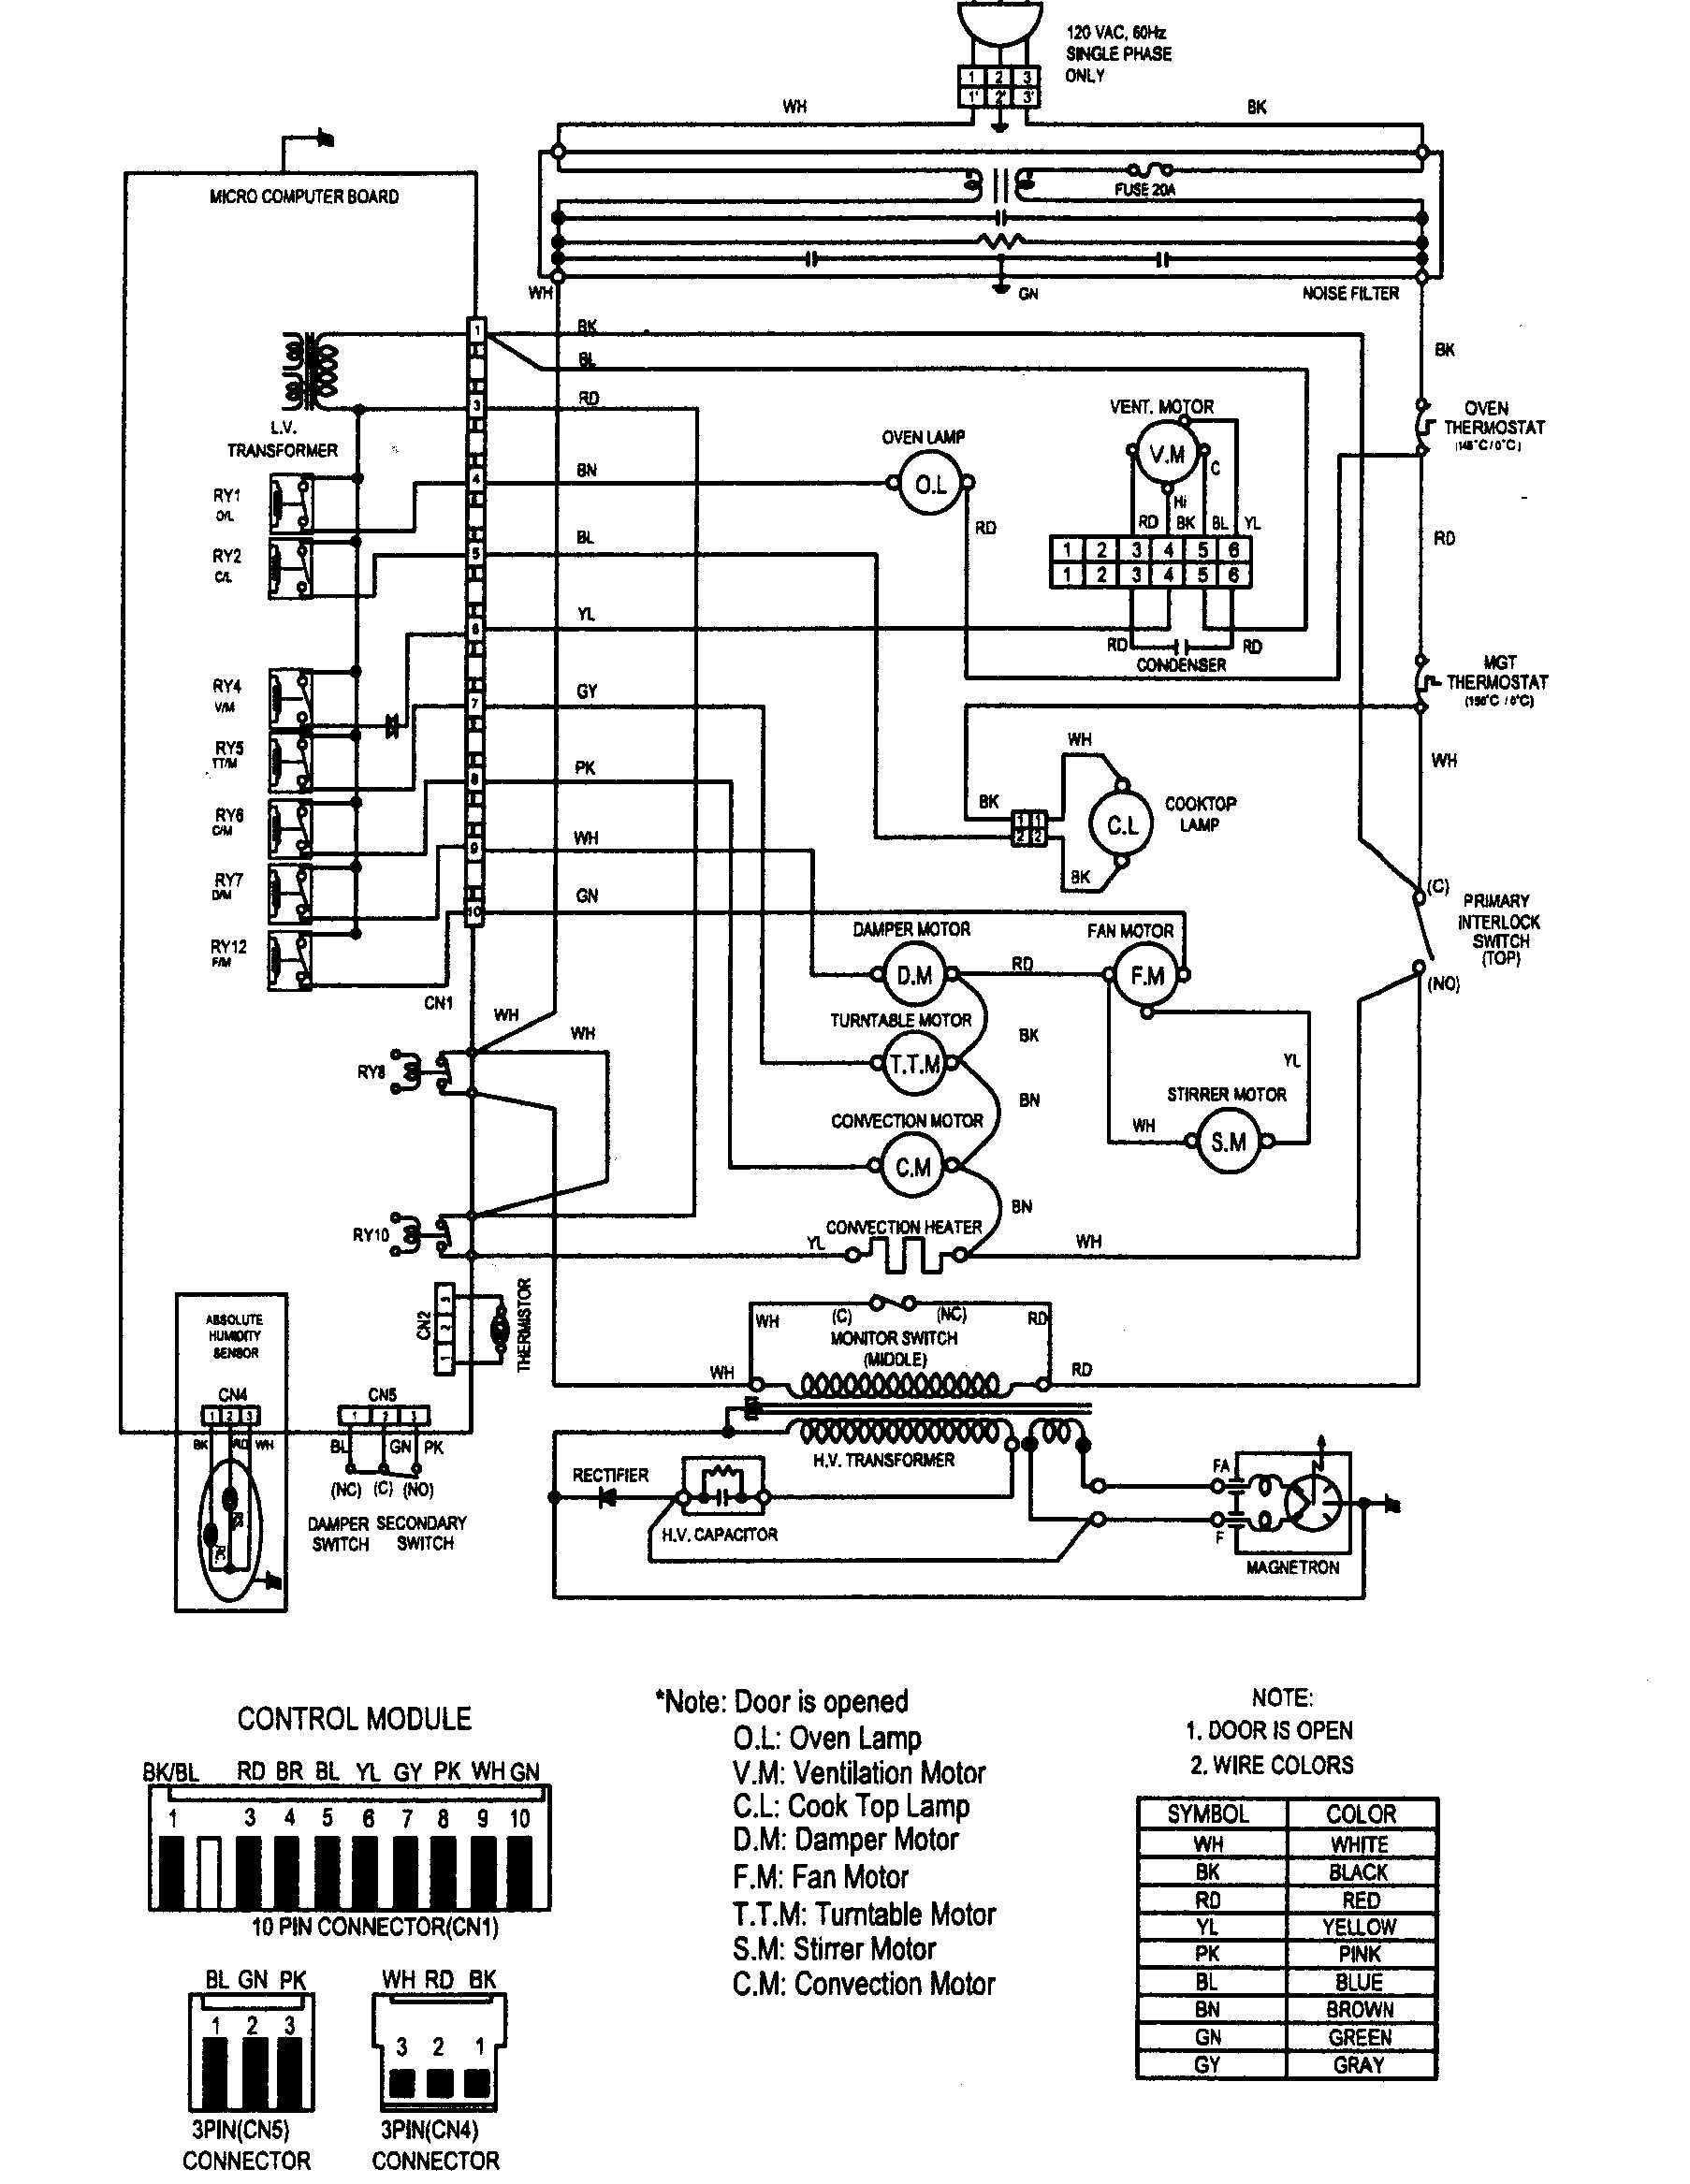 Gas Furnace Wiring Diagram Whirlpool Ice Maker